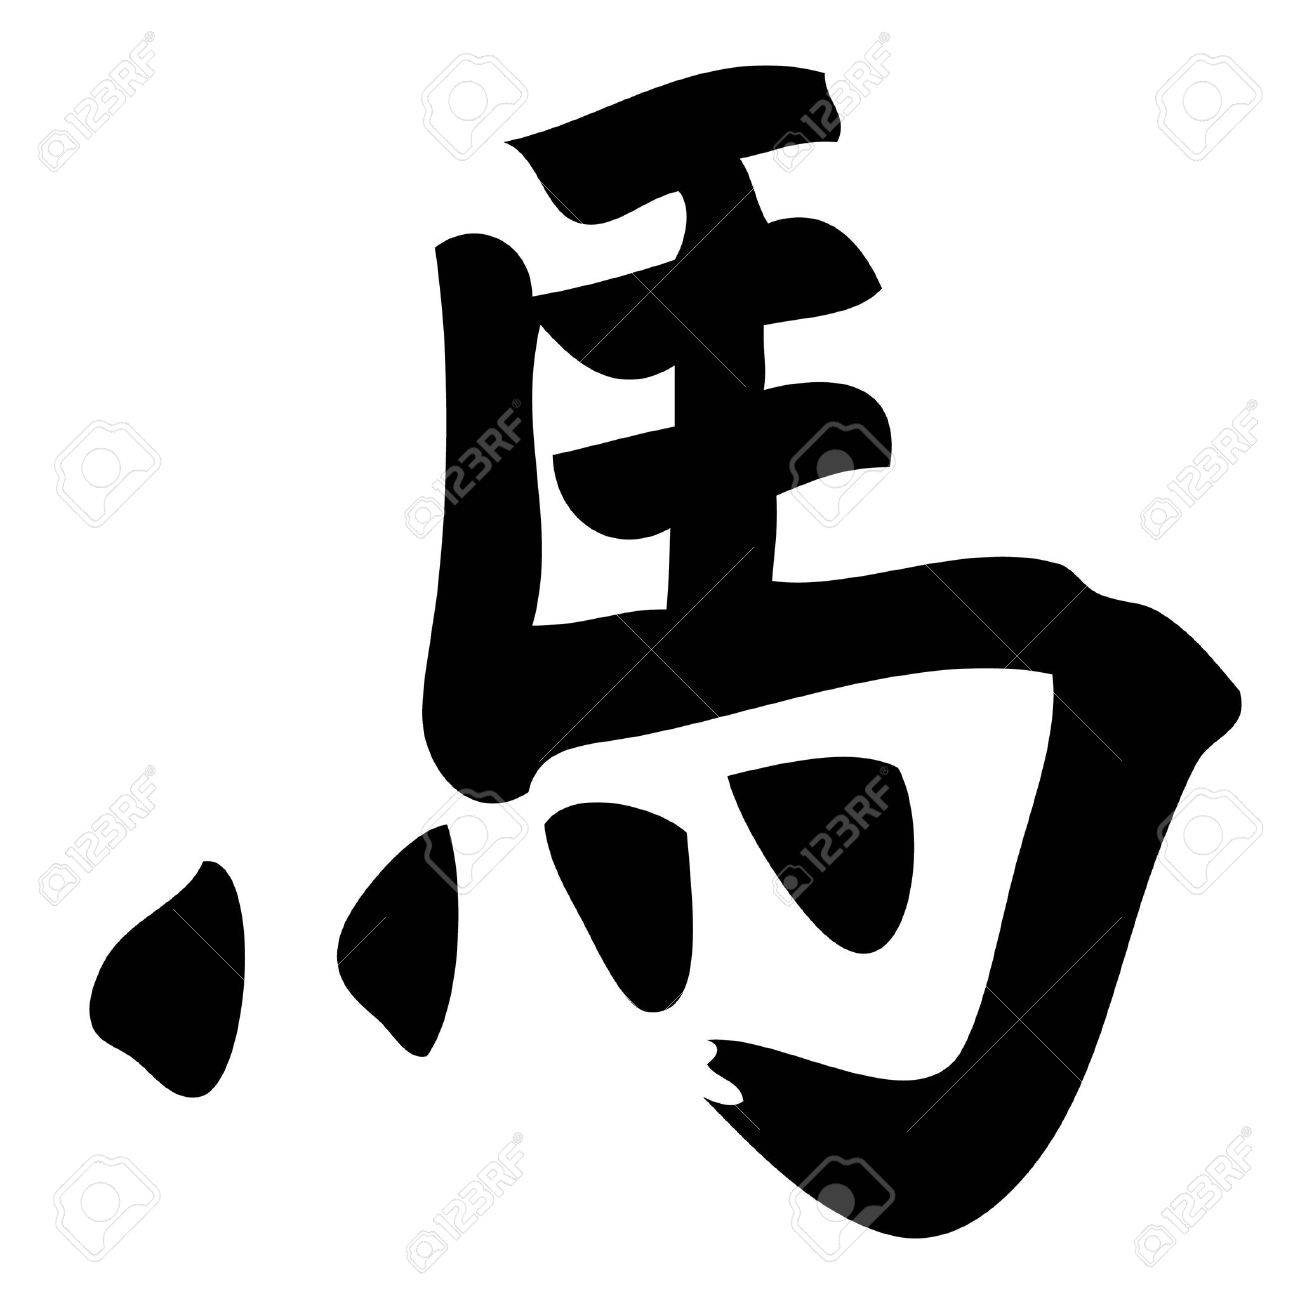 Horse Chinese Calligraphysymbolcharacter Royalty Free Cliparts